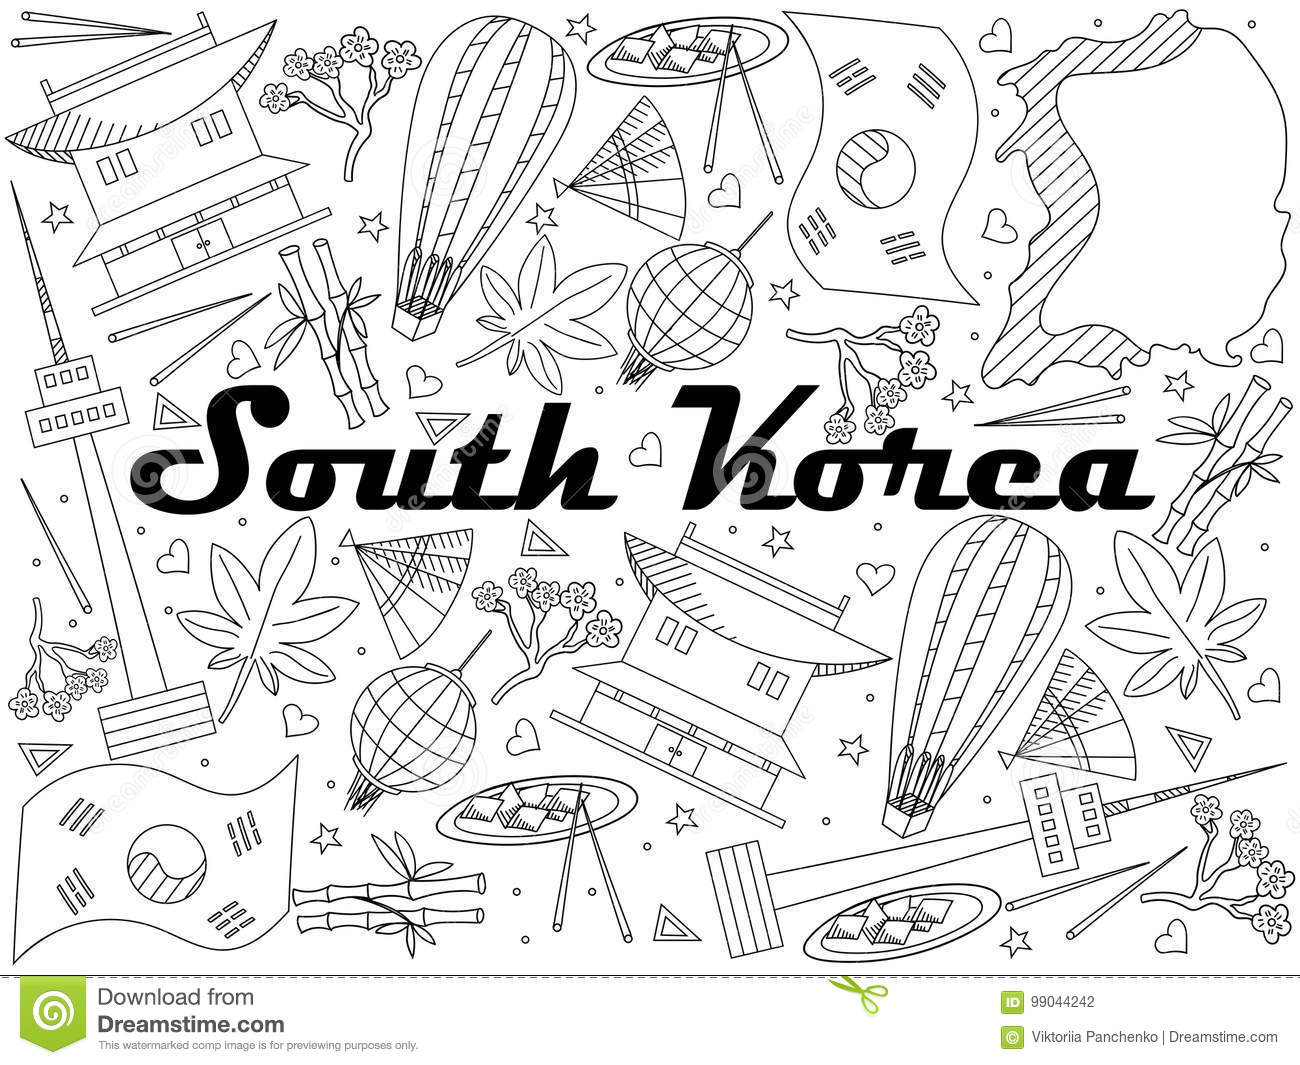 South korea coloring book - Royalty Free Illustration Download South Korea